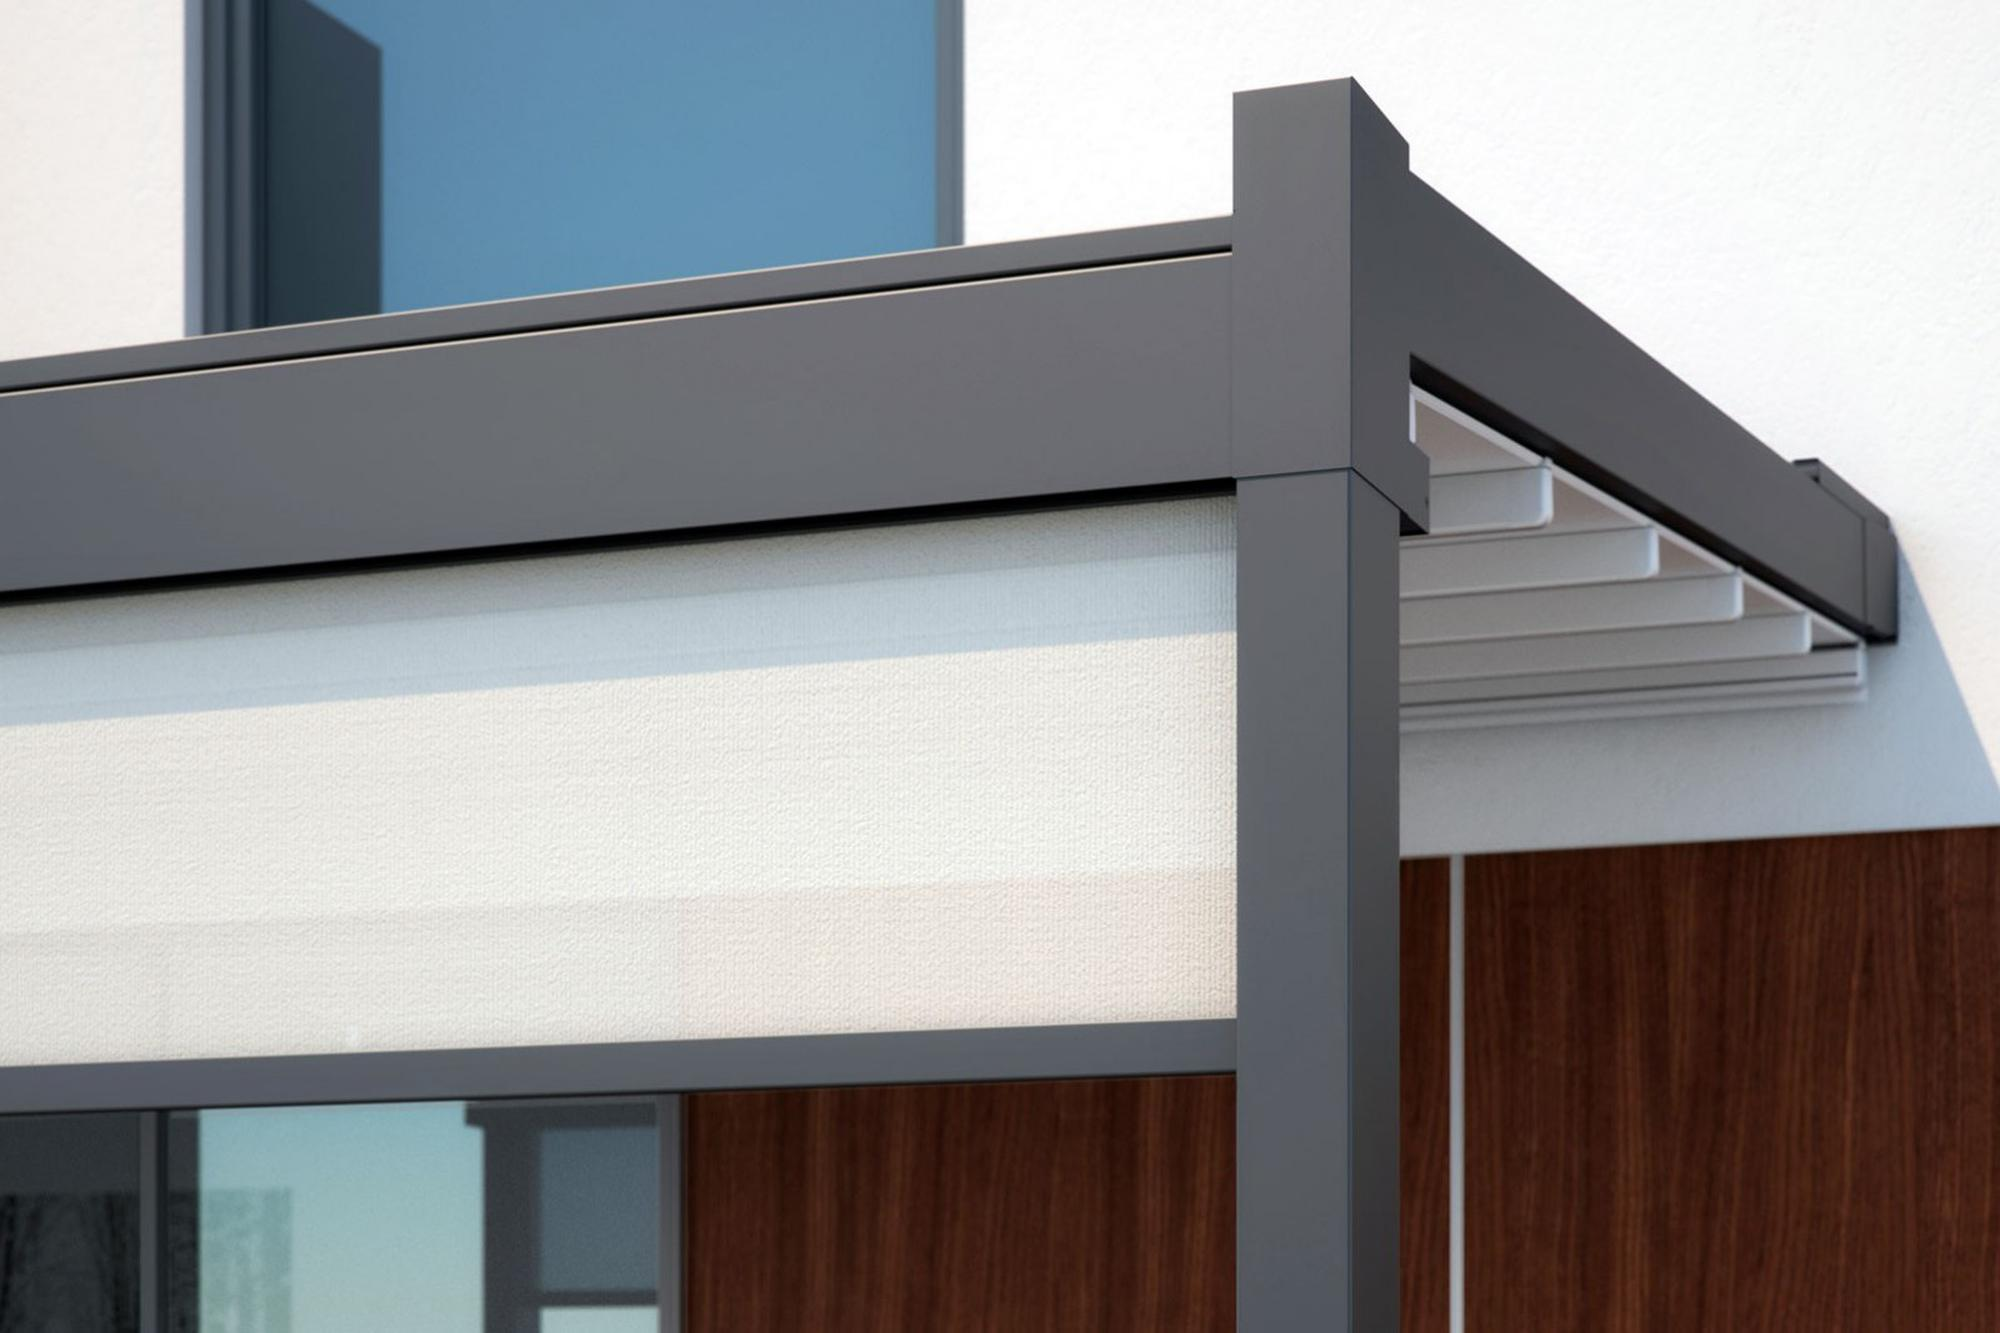 retractable residential patio deck attached pergola cover system fabric close up